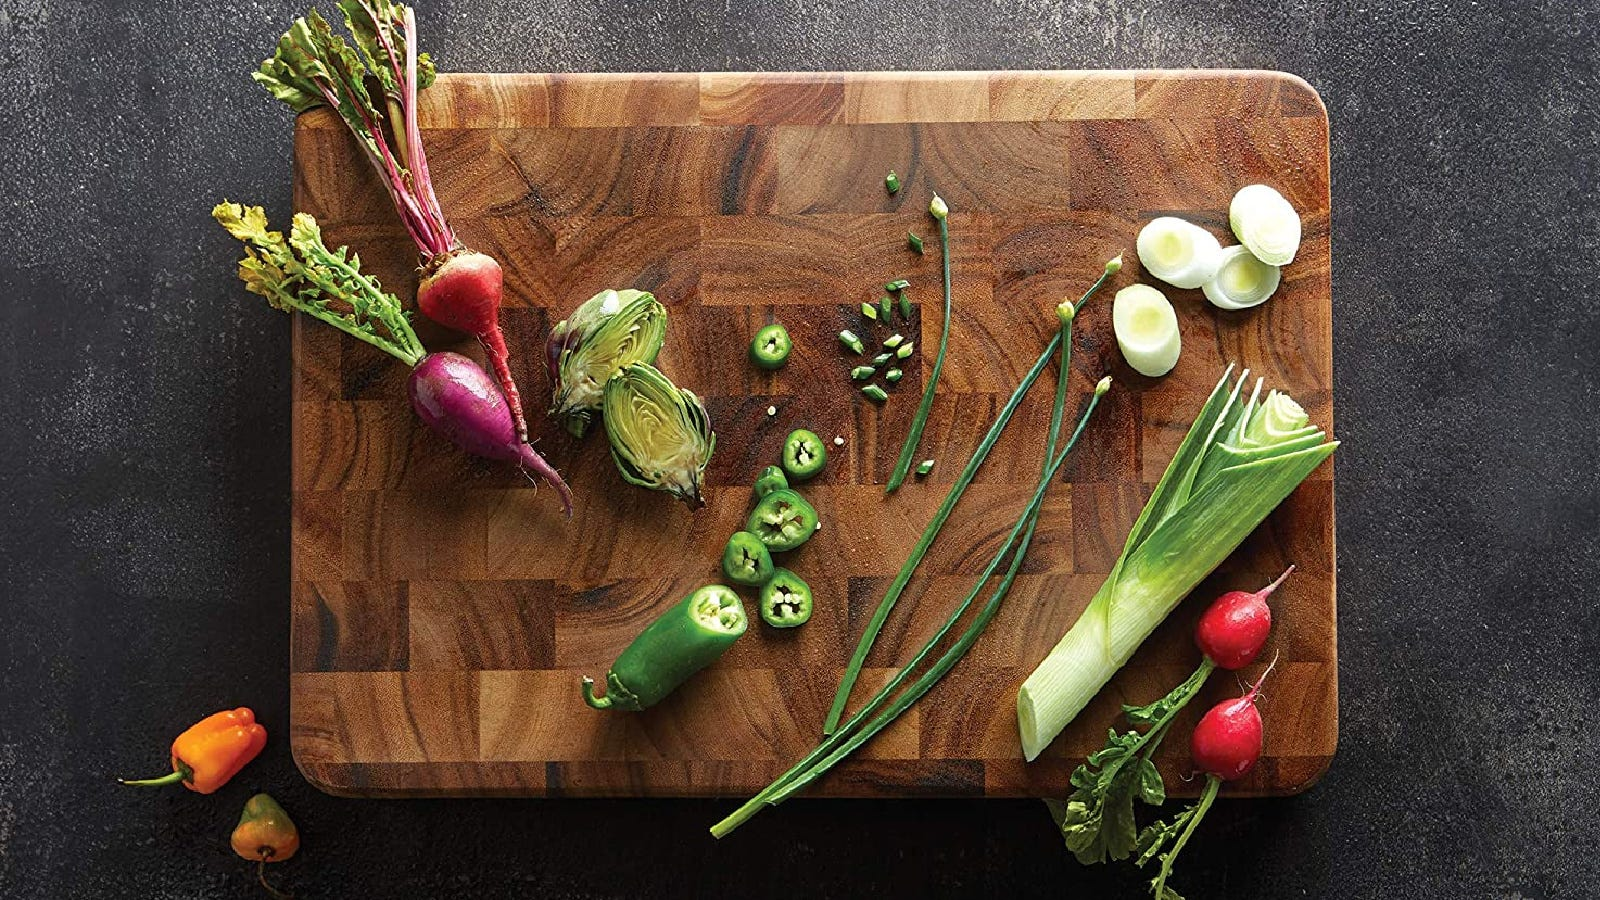 An edge grain woodent cutting board made from acacia wood by Ironwood Gourmet with various vegetables presented on top.